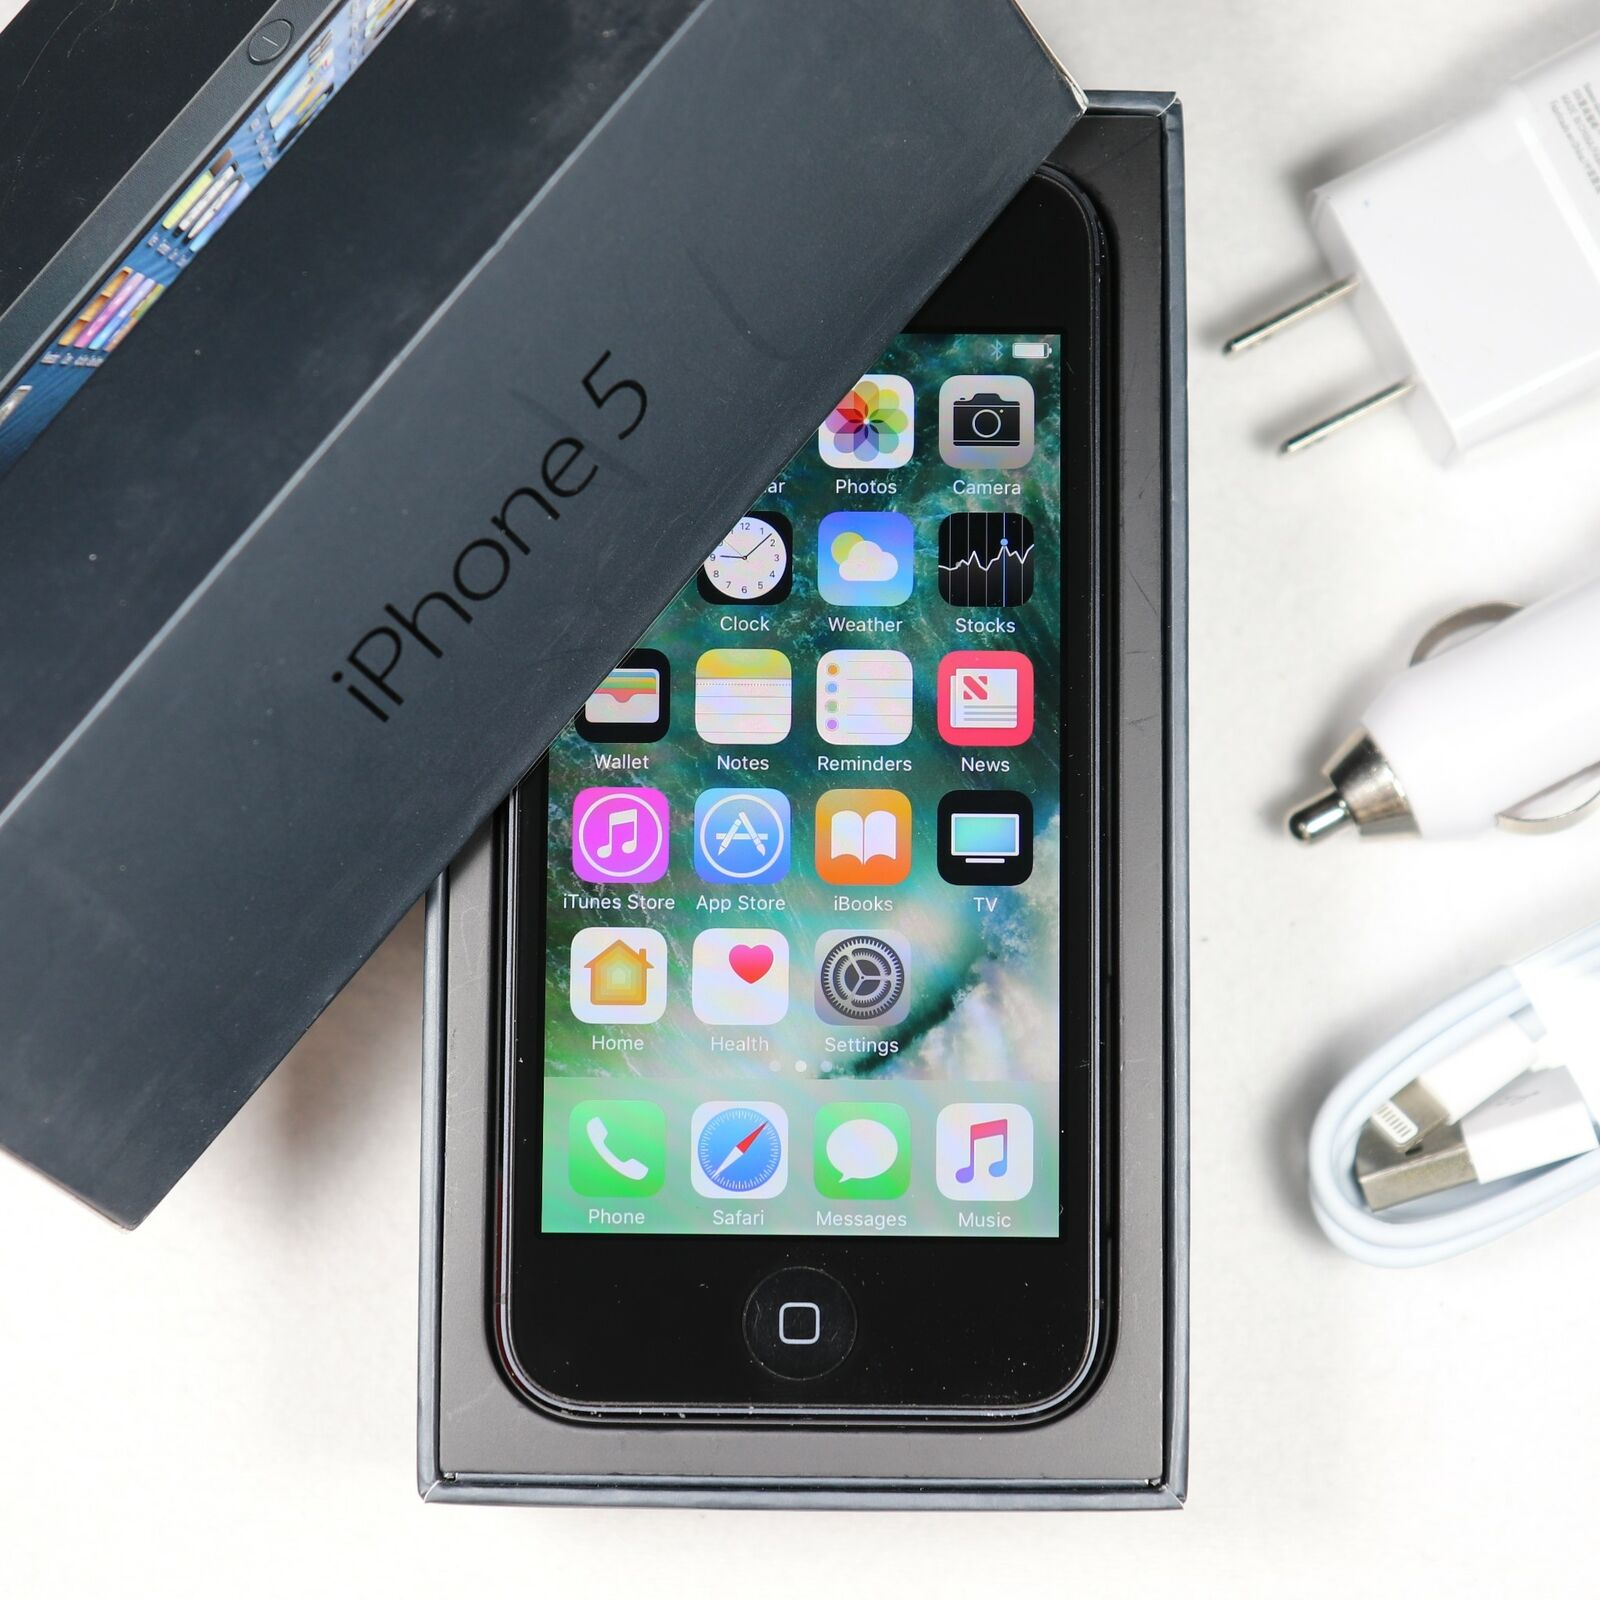 Apple iPhone 5 (AT&T) 4G LTE High Speed 32GB - A1428 - Black In Original Box